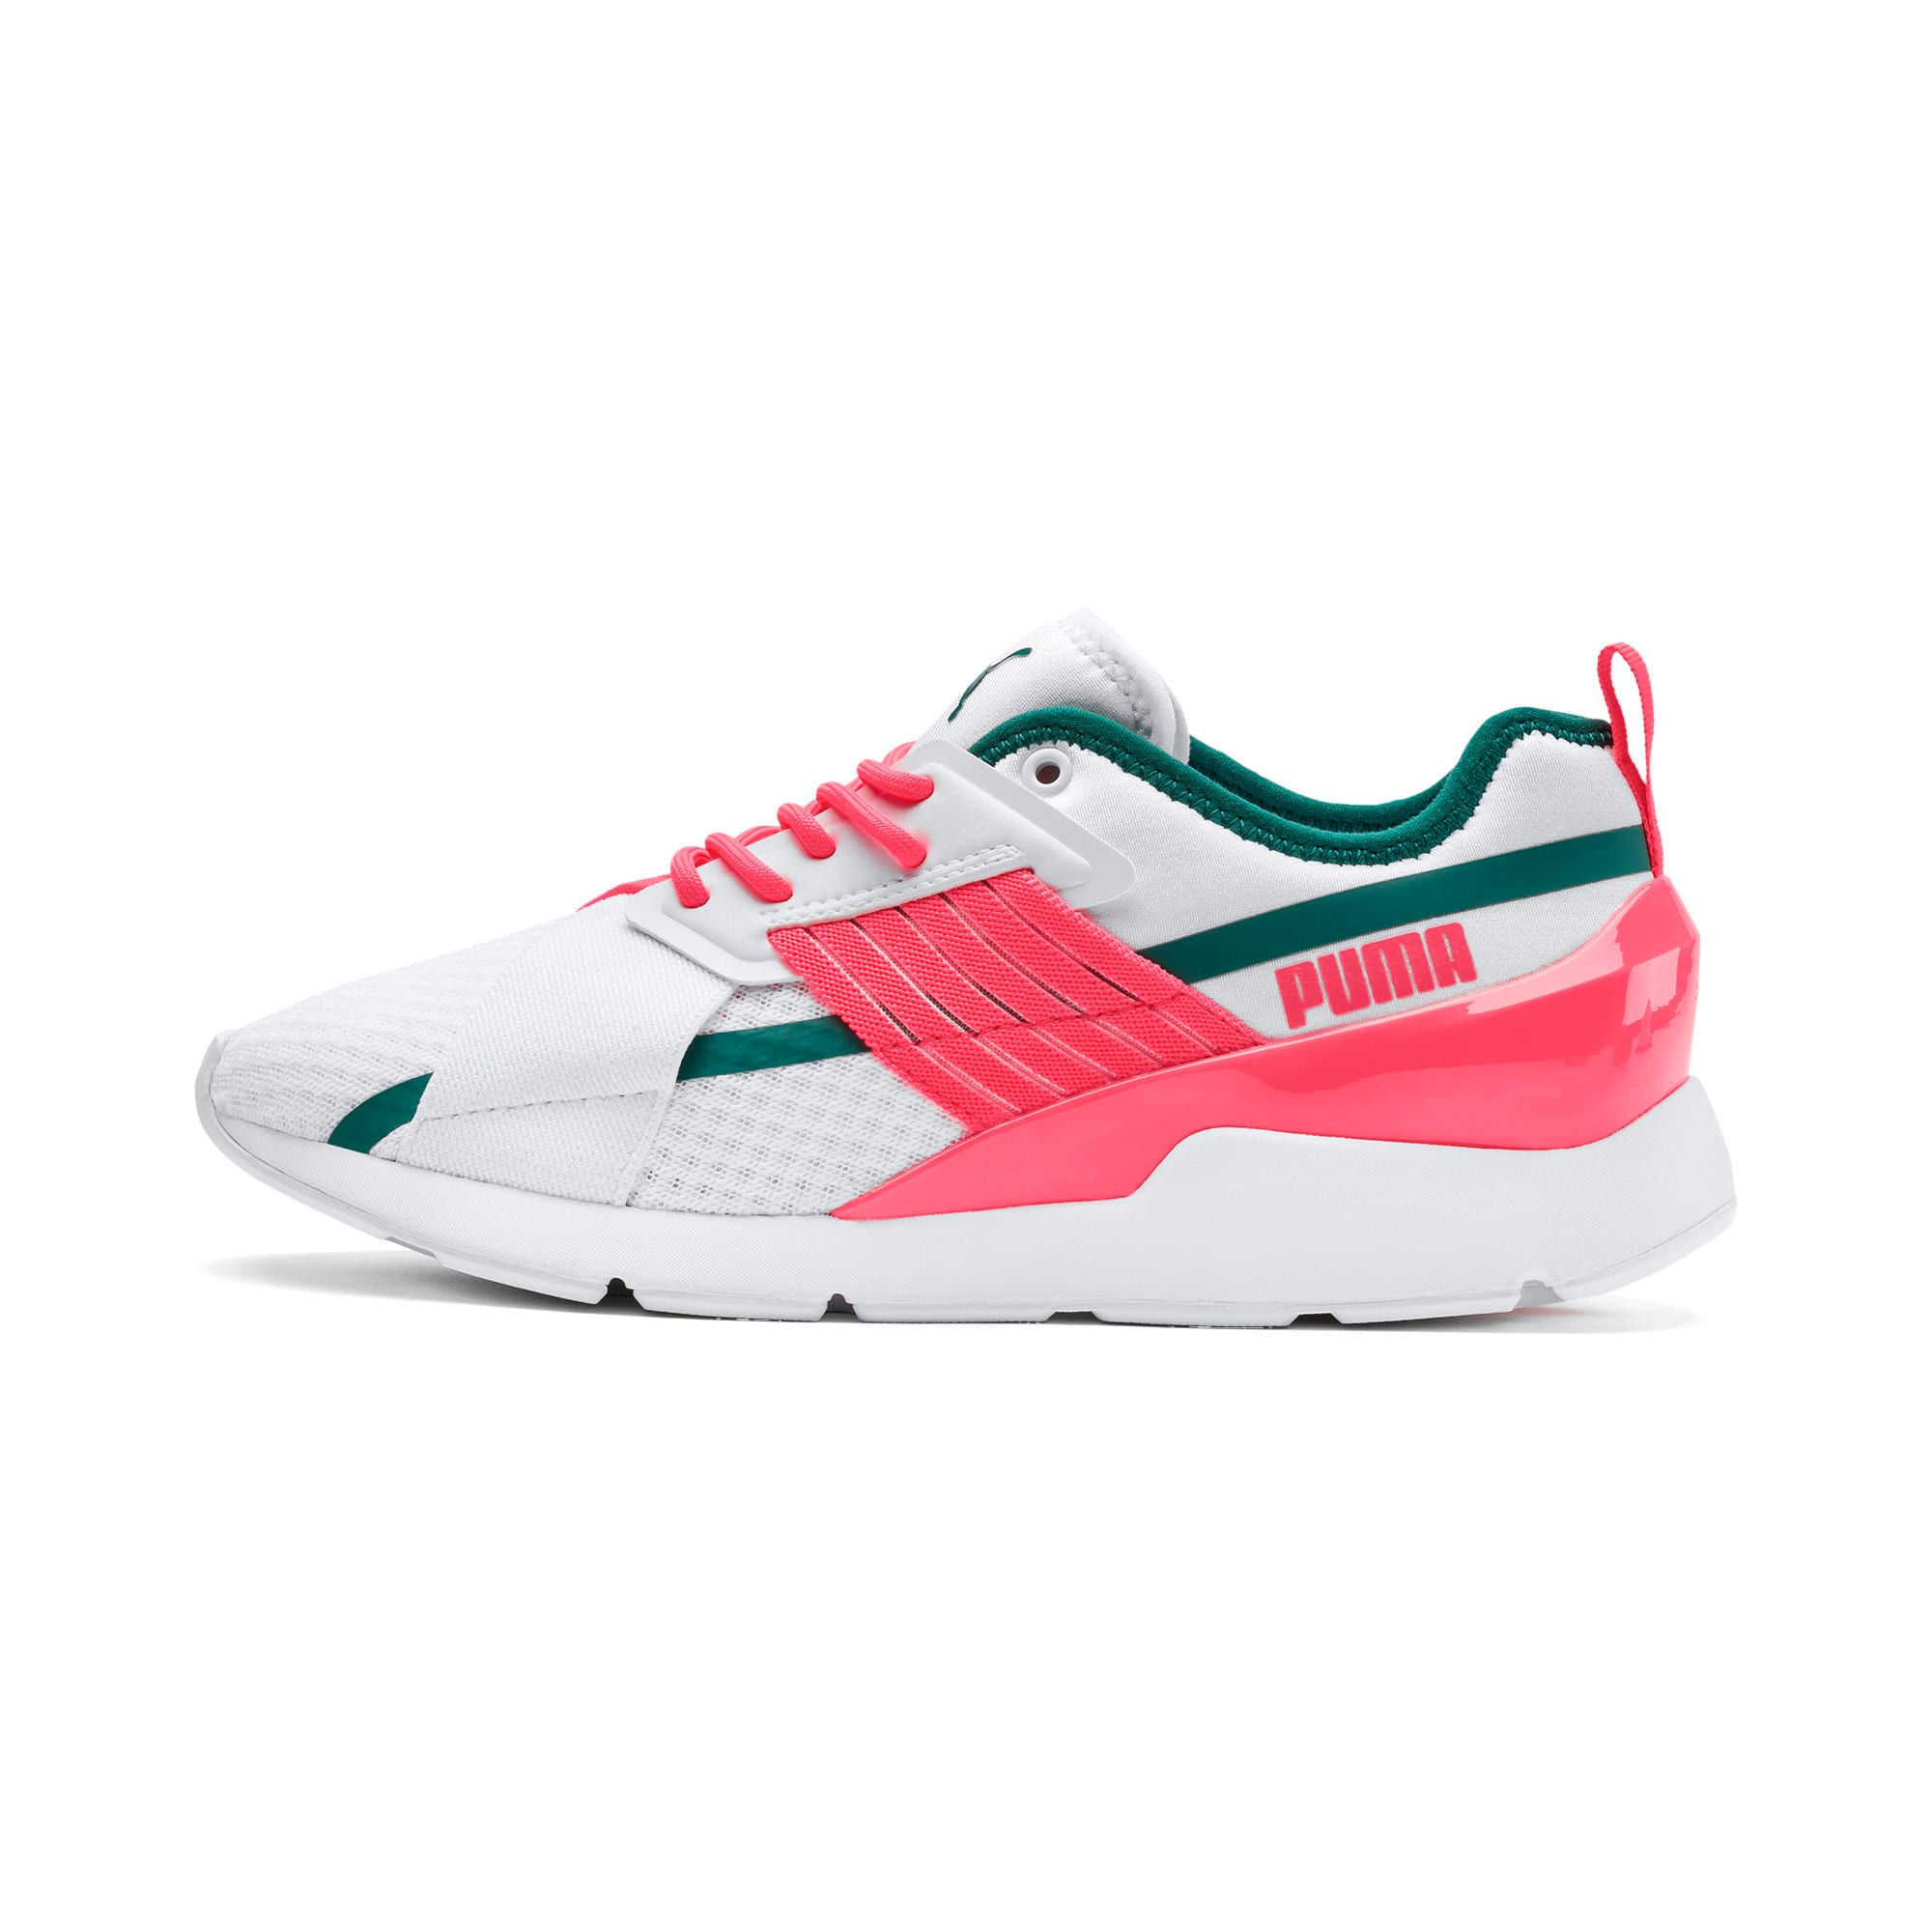 Thumbnail 1 of Muse X-2 Damen Sneaker, Puma White-Pink Alert, medium